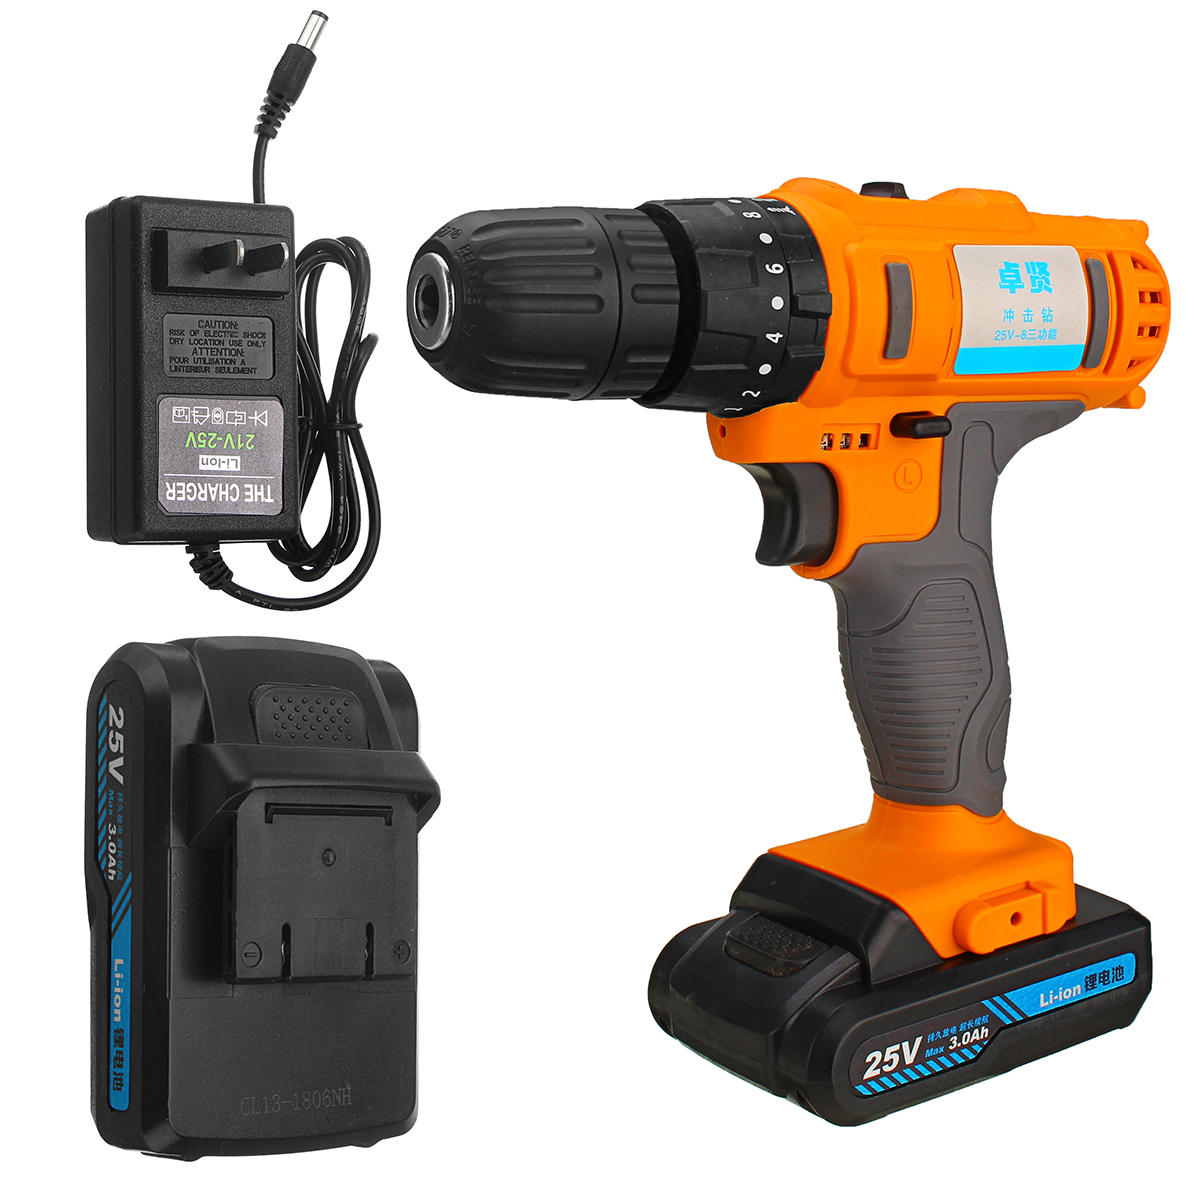 25V Cordless Power Drill Rechargeable 2 Speed Electric Screwdriver Li-ion Battery Driver Tool 0.8-10mm